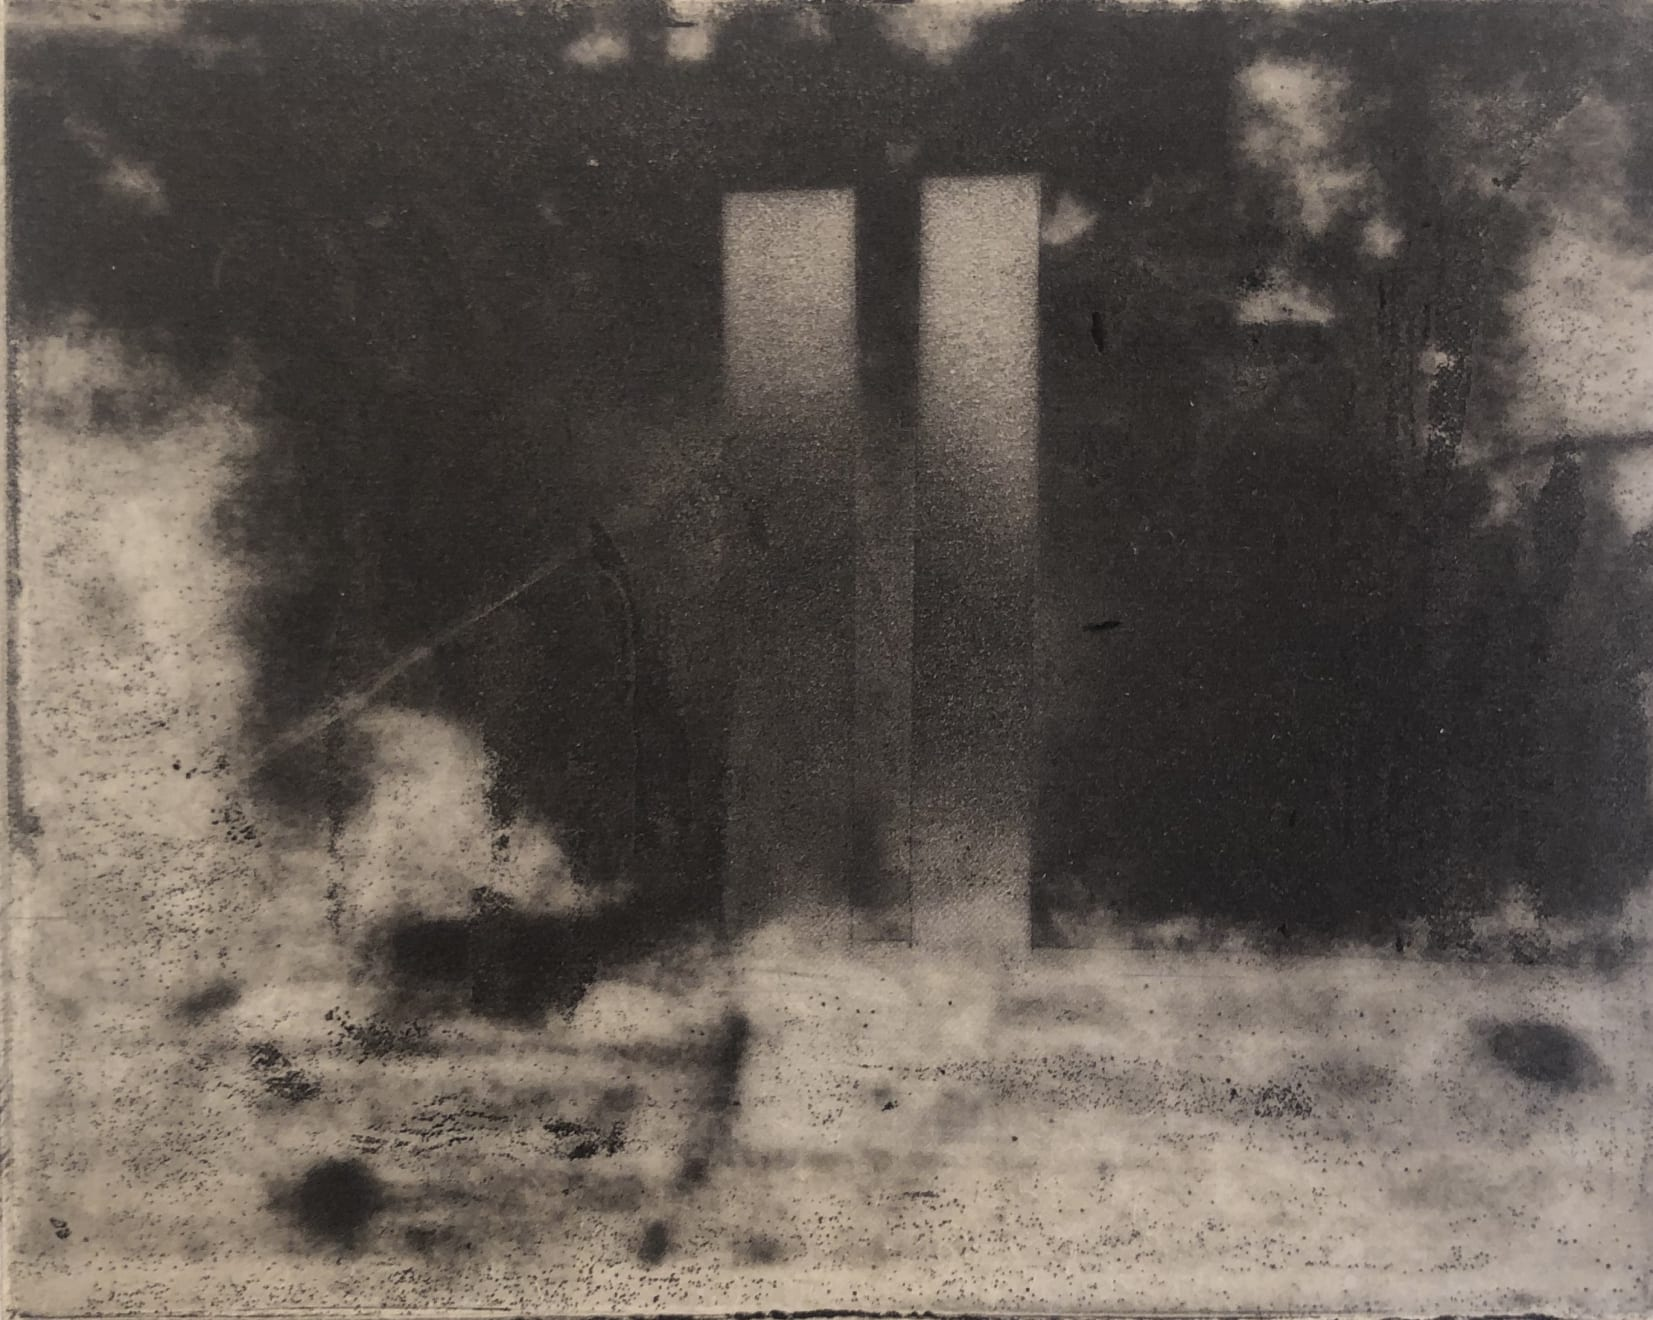 Norman Ackroyd, Manhattan, 1973